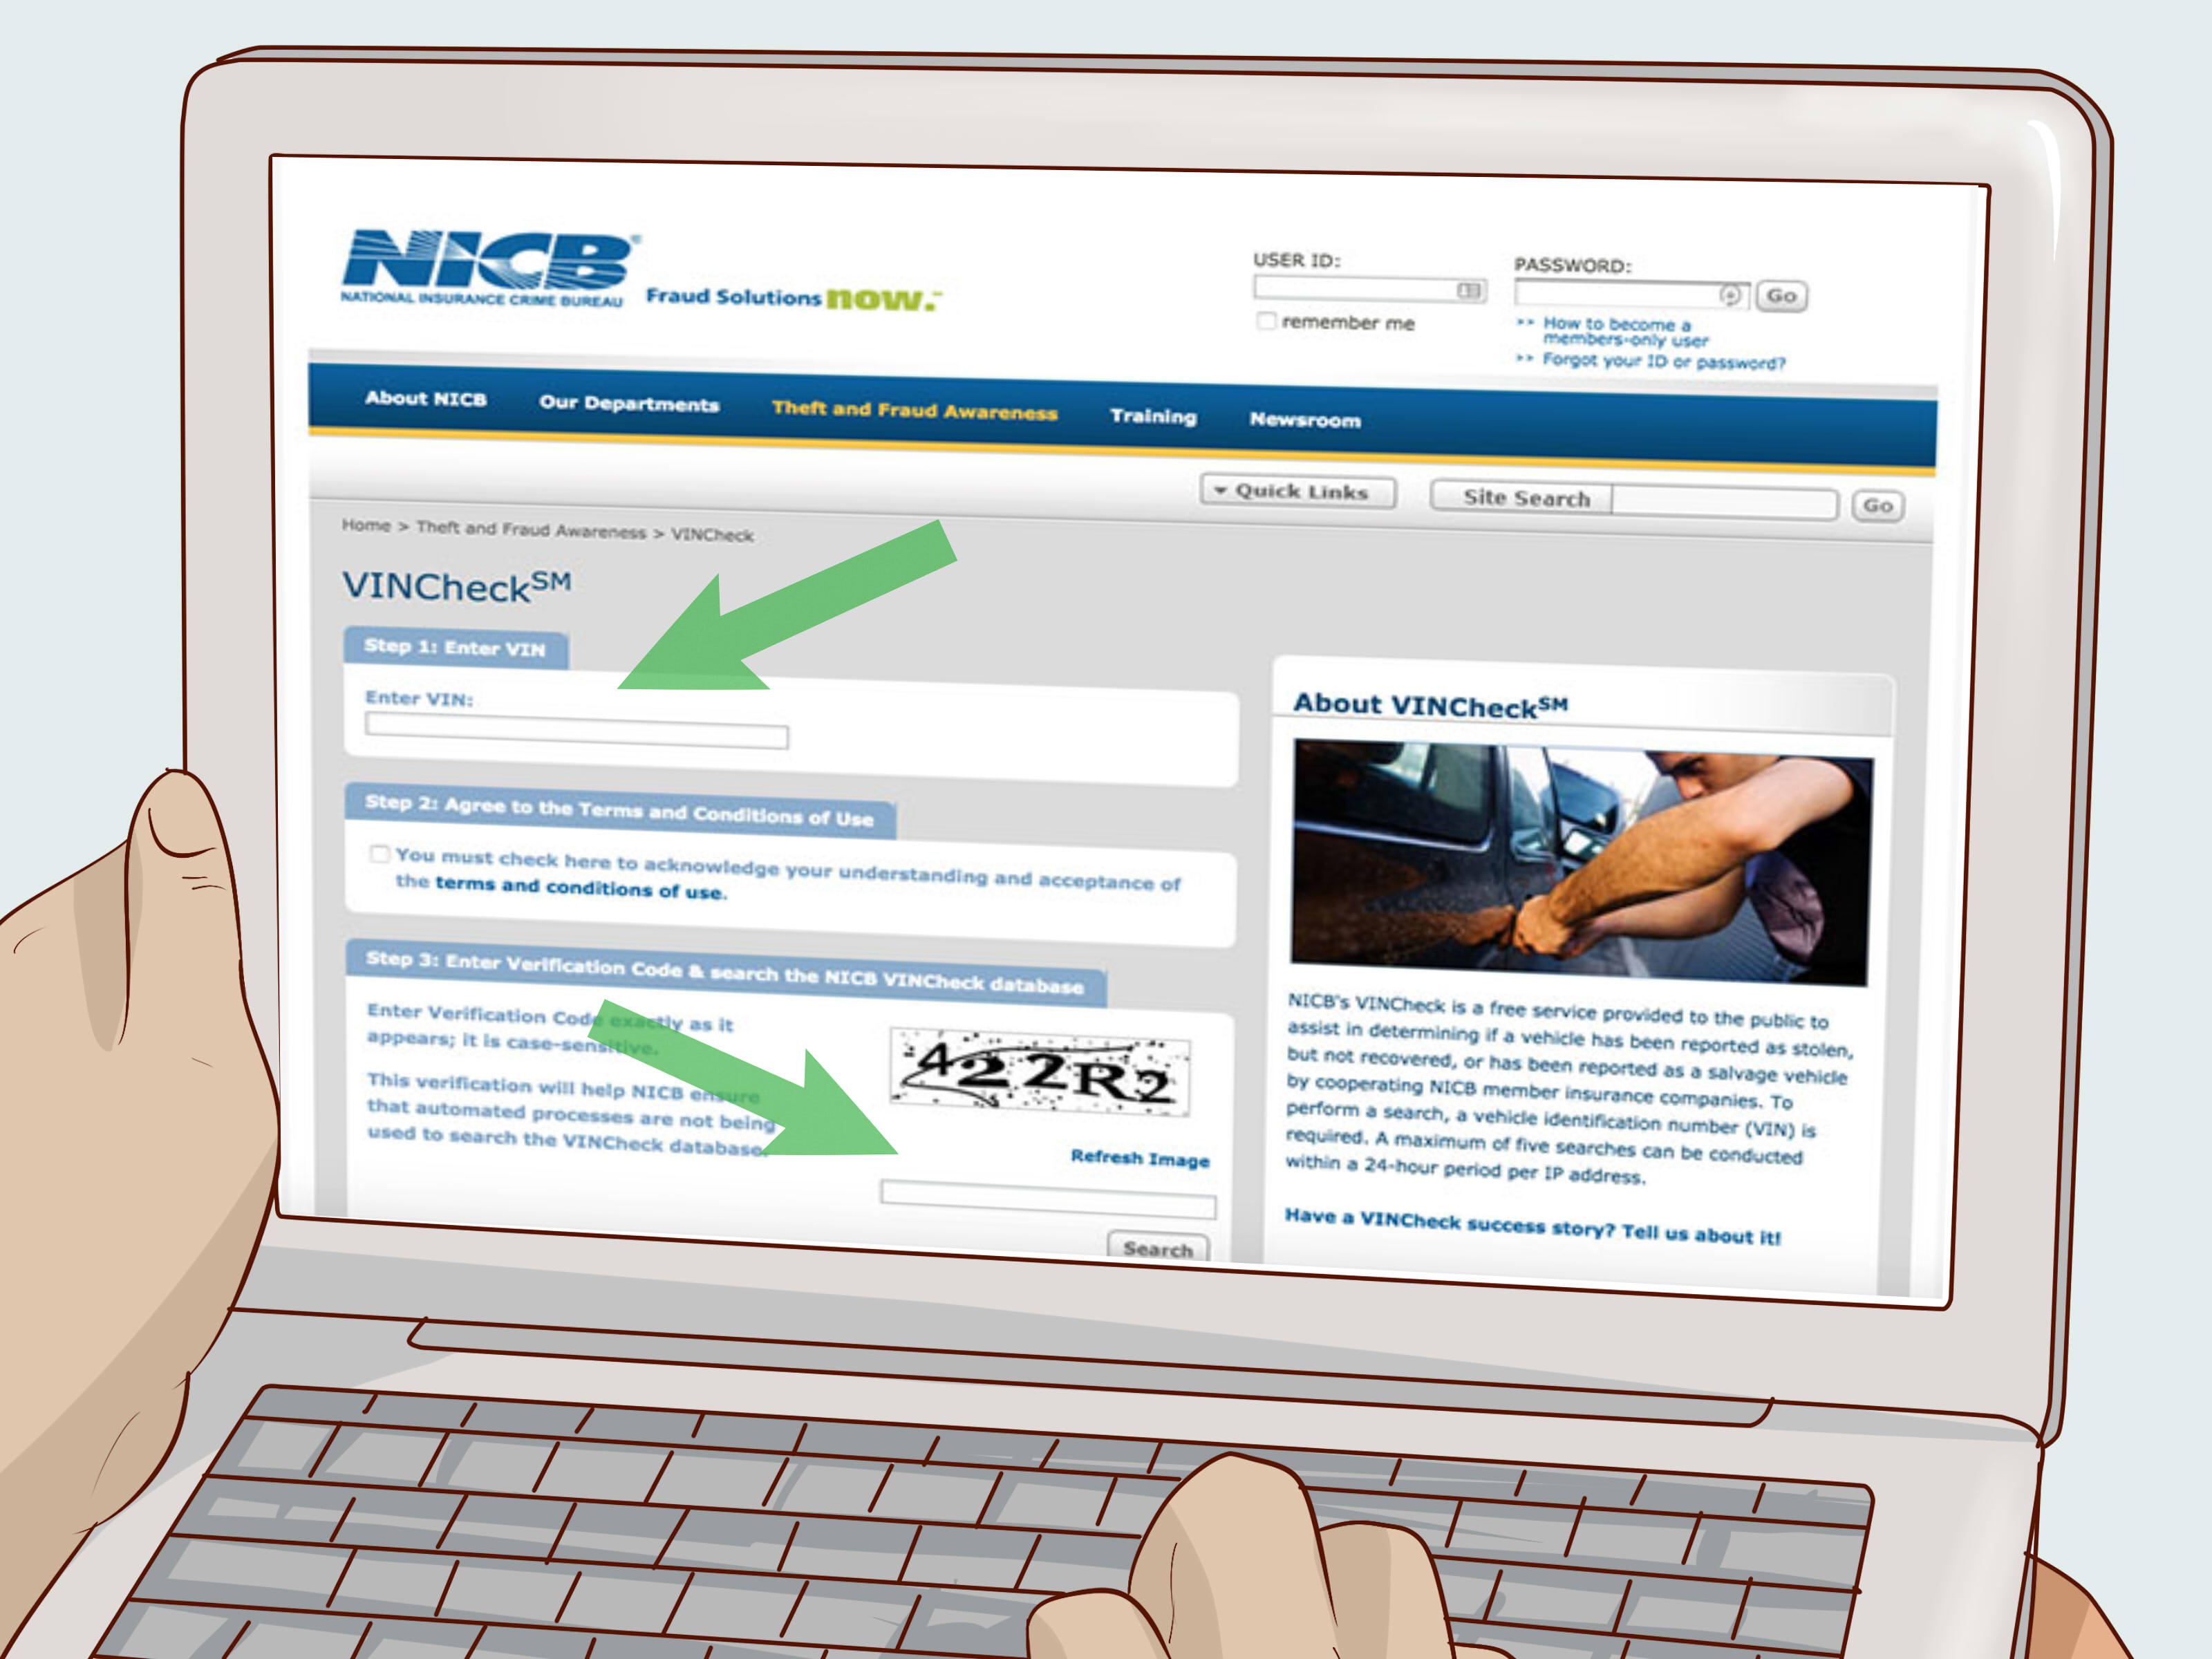 Get Free Full Carfax Report Unique 4 Ways to Check Vehicle History for Free Wikihow